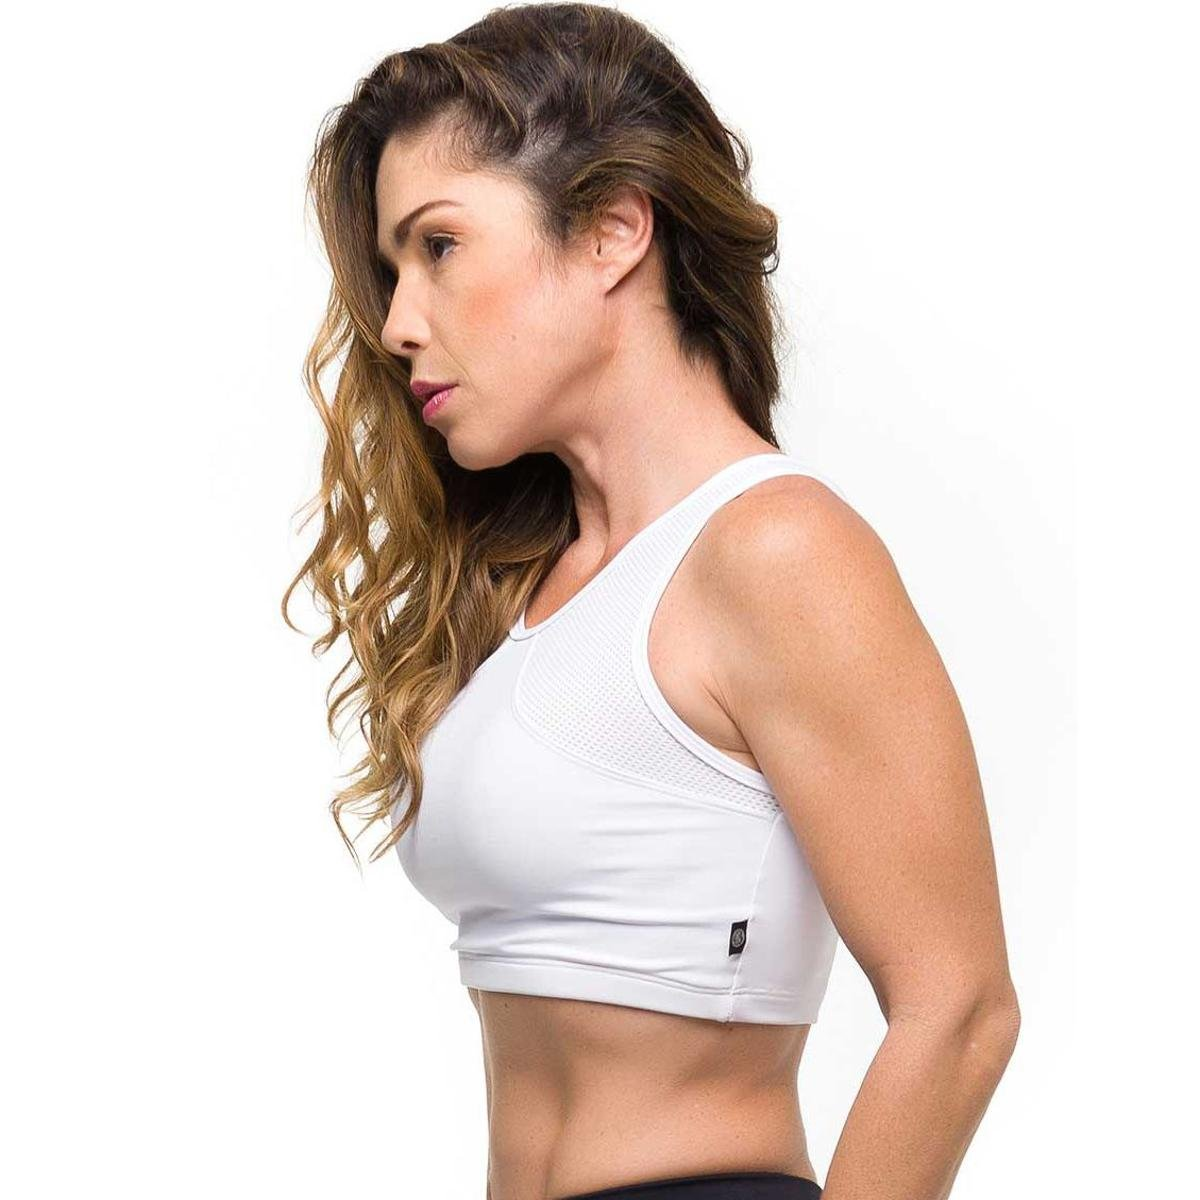 Branco Top Branco Basic Sandy Top Sandy Basic Fitness Fitness Top Gym Gym Sandy Gym Basic qwZE6Z8A